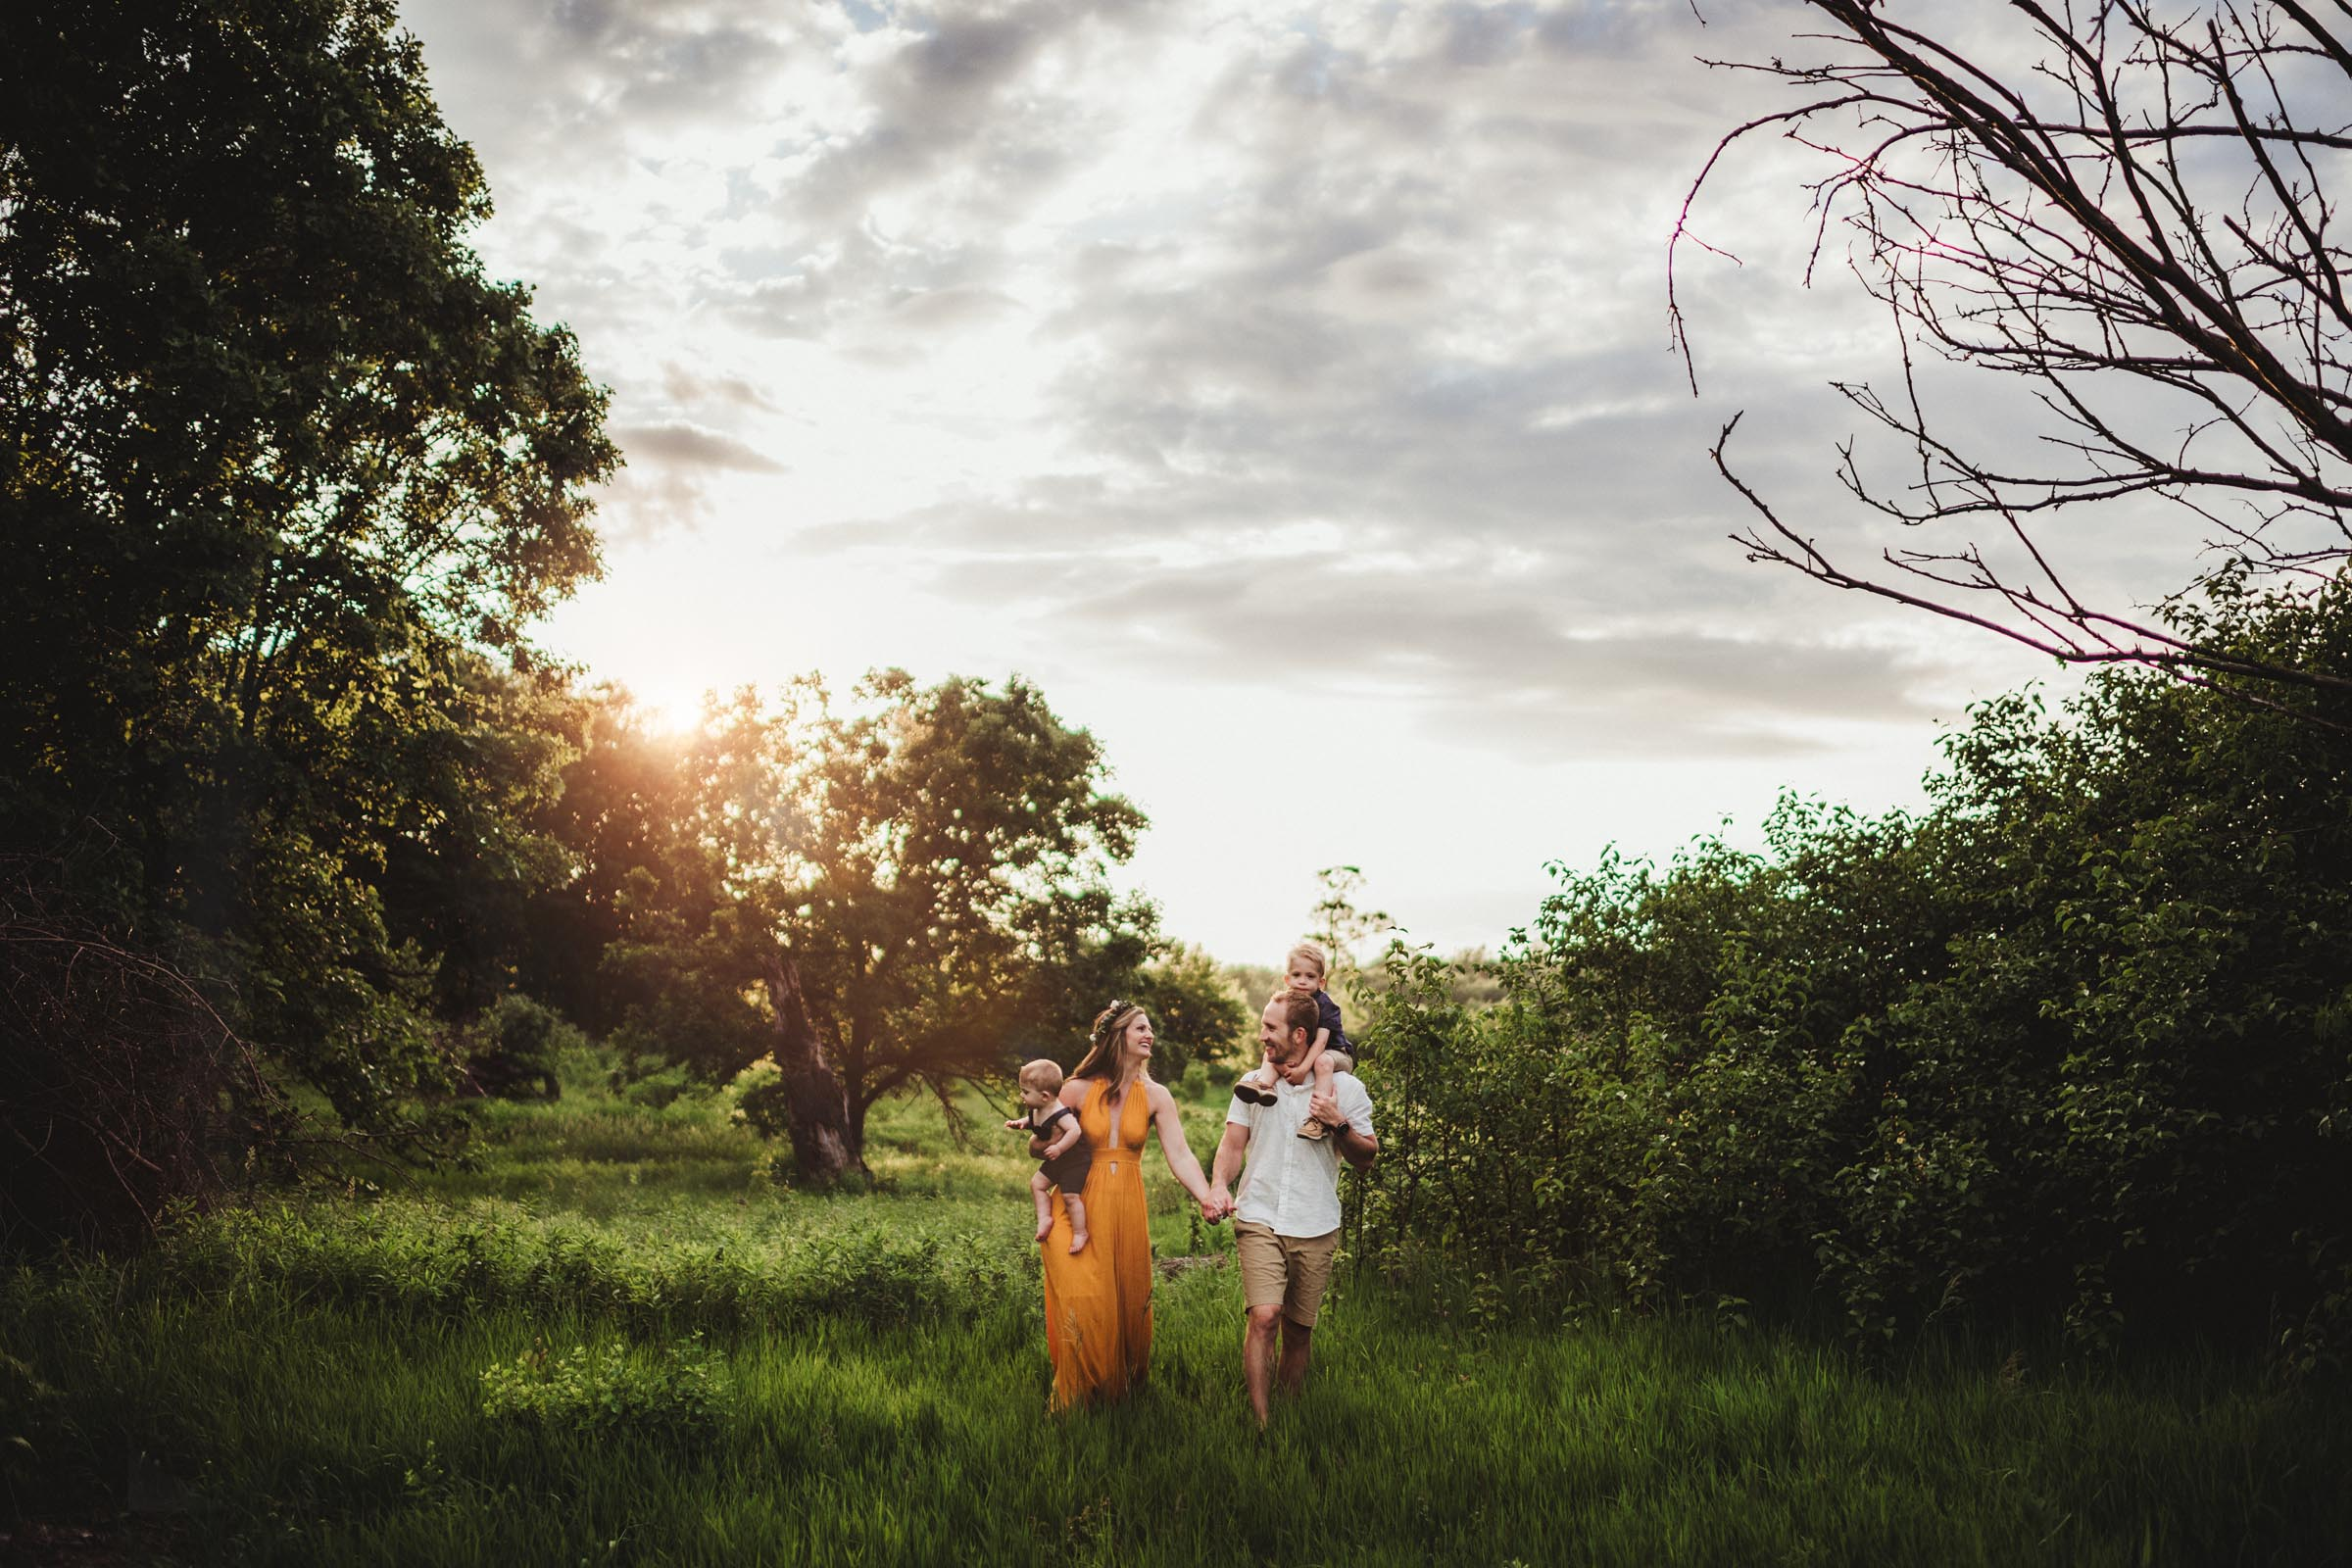 Family in Field at Sunset